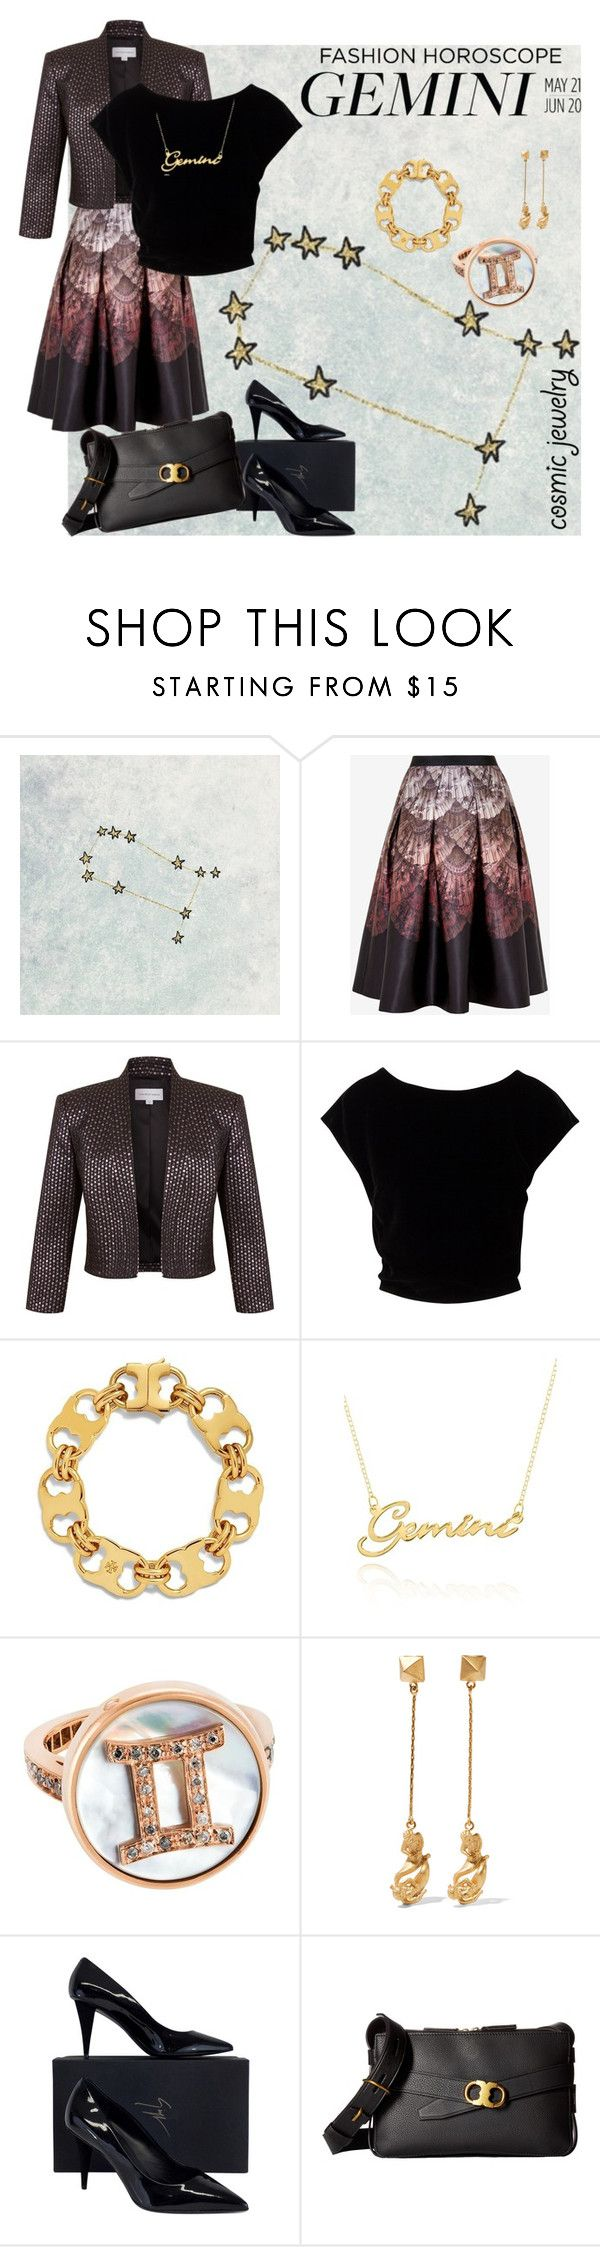 """Gemini jewelry"" by andrea-pok ❤ liked on Polyvore featuring Ted Baker, Fenn Wright Manson, Tory Burch, Belk & Co., Carolina Bucci, Valentino, Giuseppe Zanotti and cosmicjewelry"